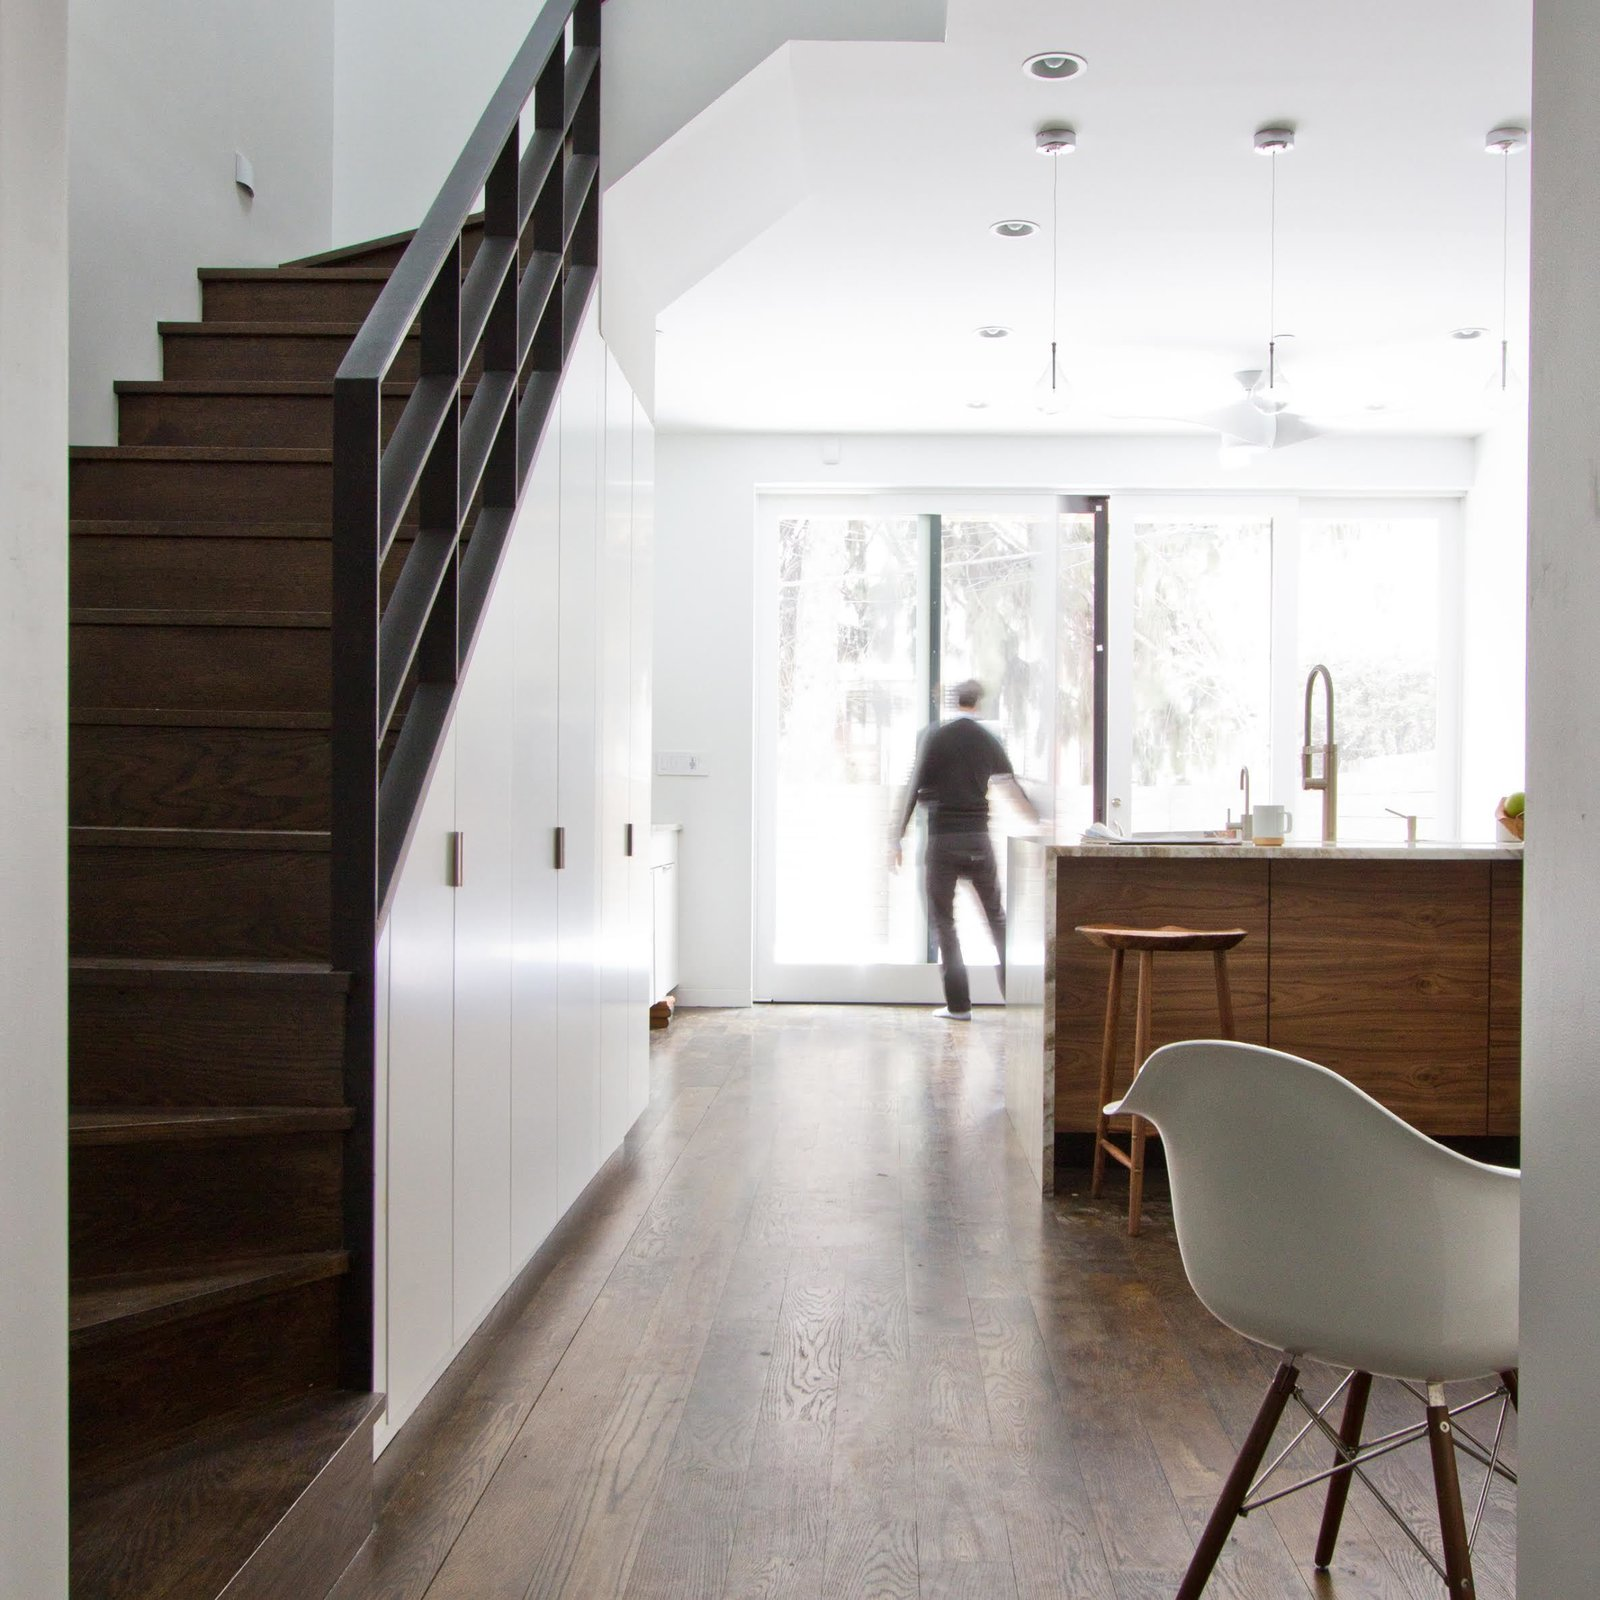 The biggest challenge of the project was designing a space that could be easily converted from a 2-family to a 1-family. Thoughtful planning and inventive storage systems were thus key to the success of the renovation.  Revitalization by Caroline Wallis